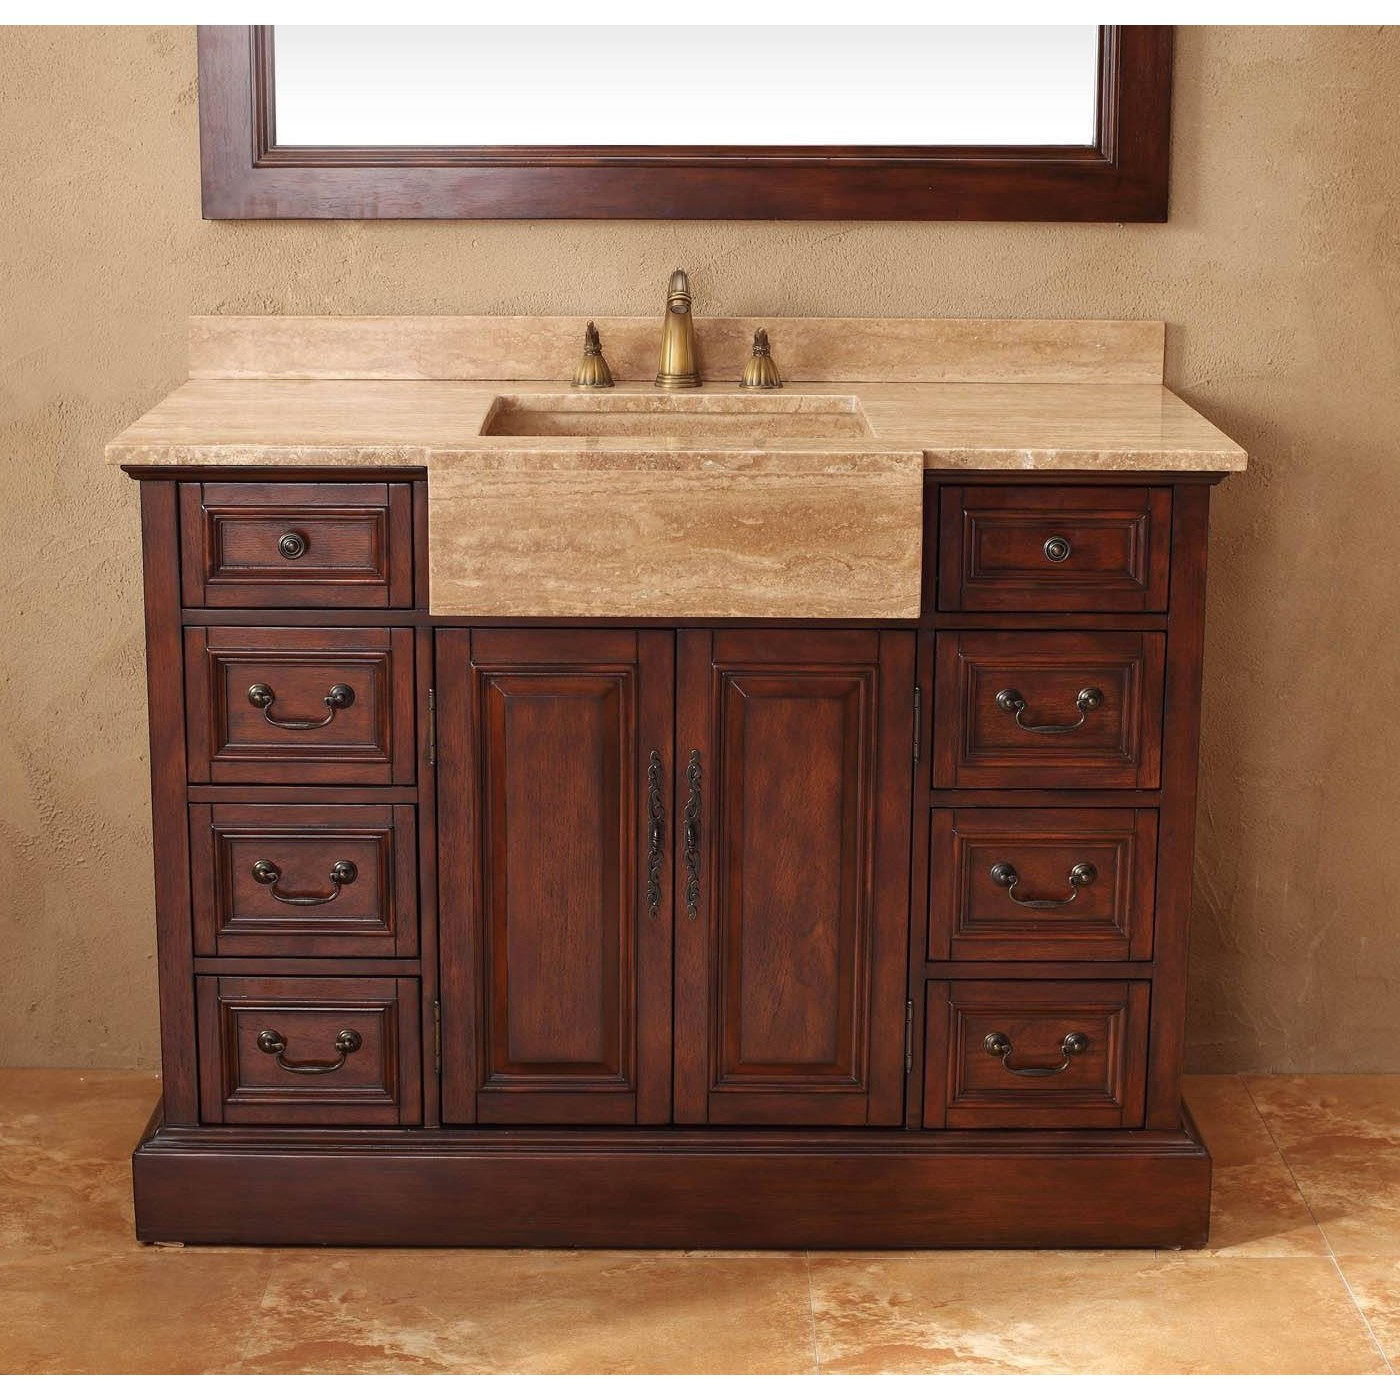 Vanity Home Depot for Bathroom Cabinets Design Ideas: Home Depot Vanities Bathroom | Vanity Home Depot | Vanities Home Depot